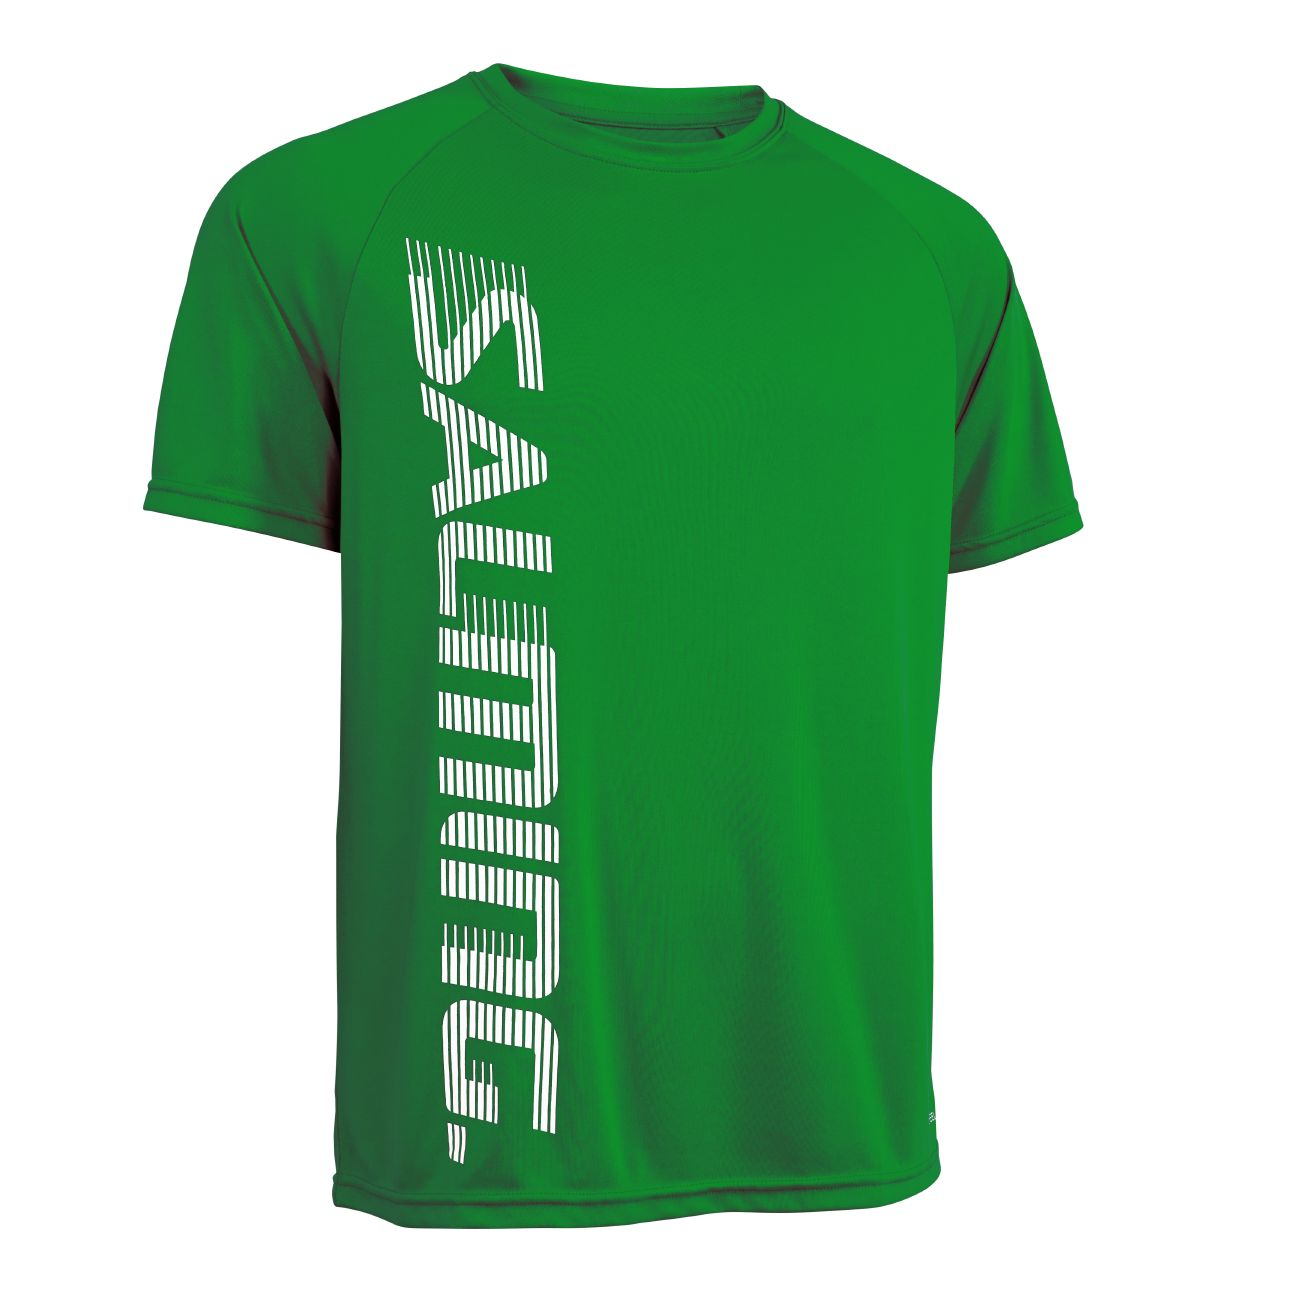 Salming Training Tee 2.0 Červená, 164